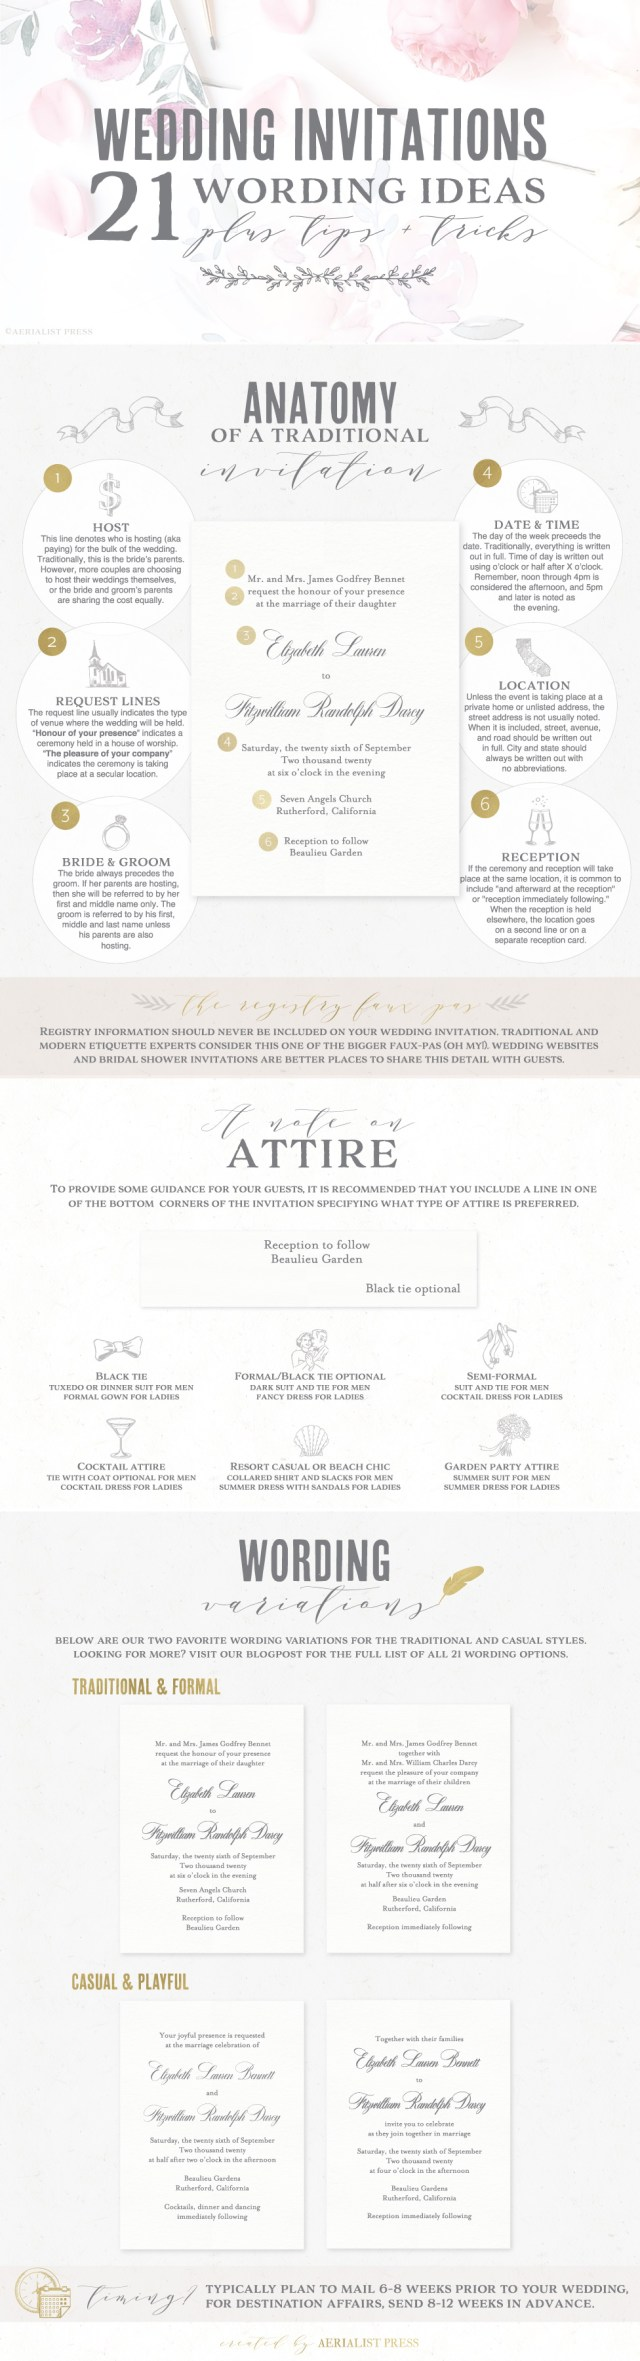 Wedding Invitation Wording Etiquette 21 Best Wedding Invitation Wording Ideas Aerialist Press